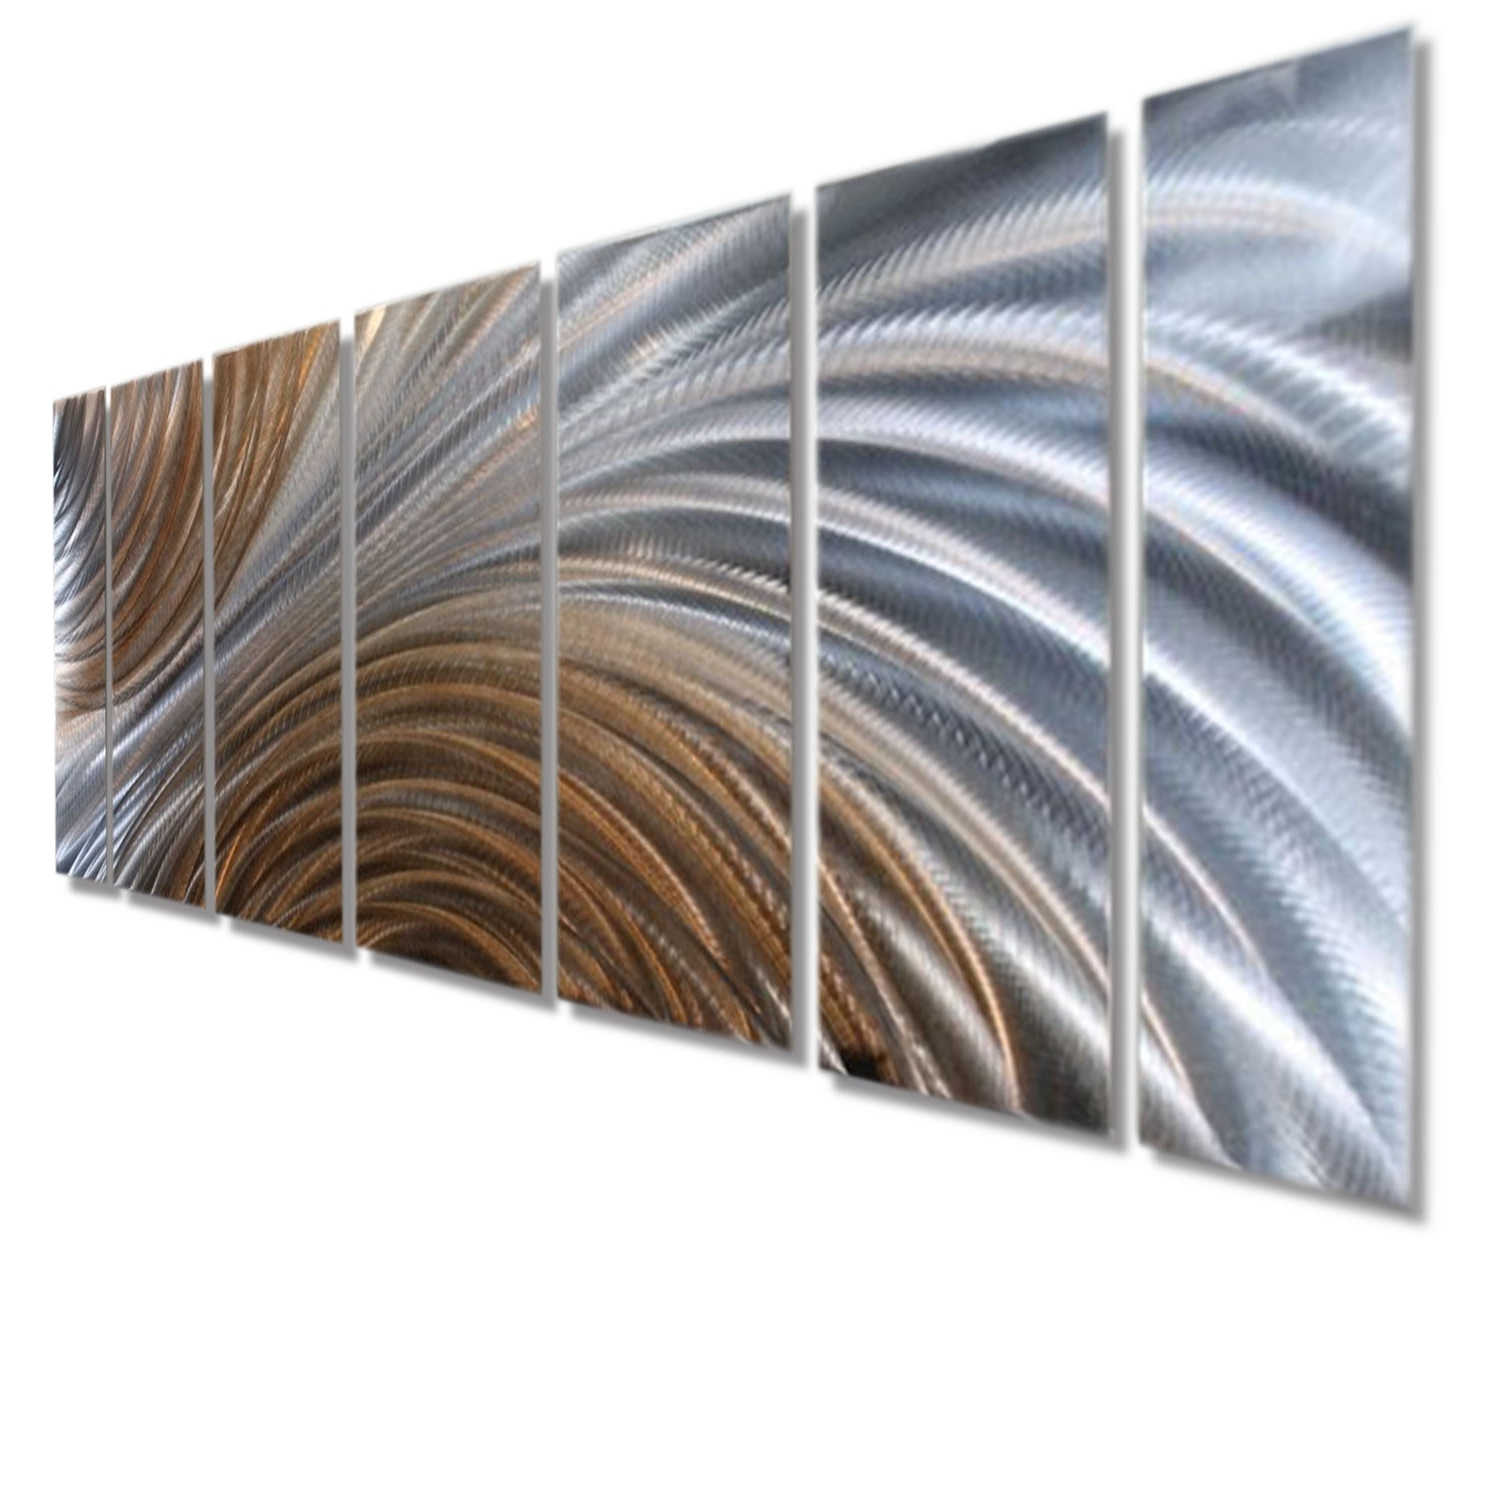 2017 Amber Ascension  Silver & Copper Abstract Metal Wall Artjon With Regard To Metal Abstract Wall Art (View 1 of 15)